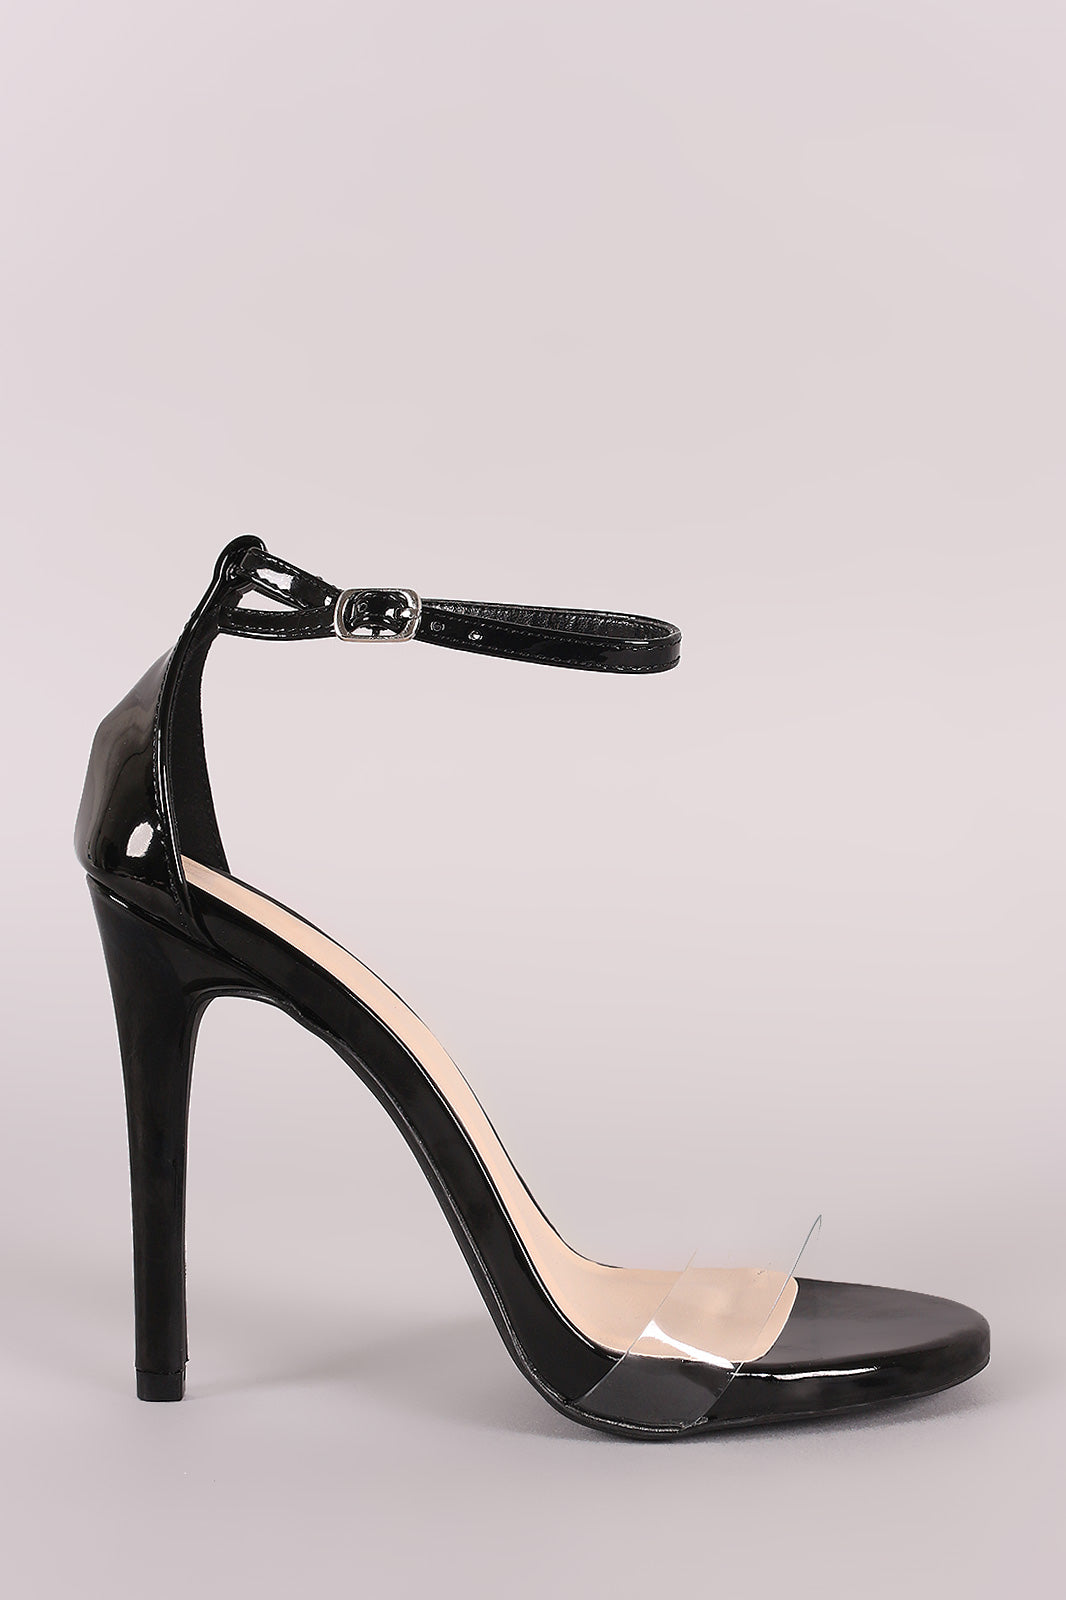 Qupid Patent Clear Ankle Strap Open Toe Stiletto Heel